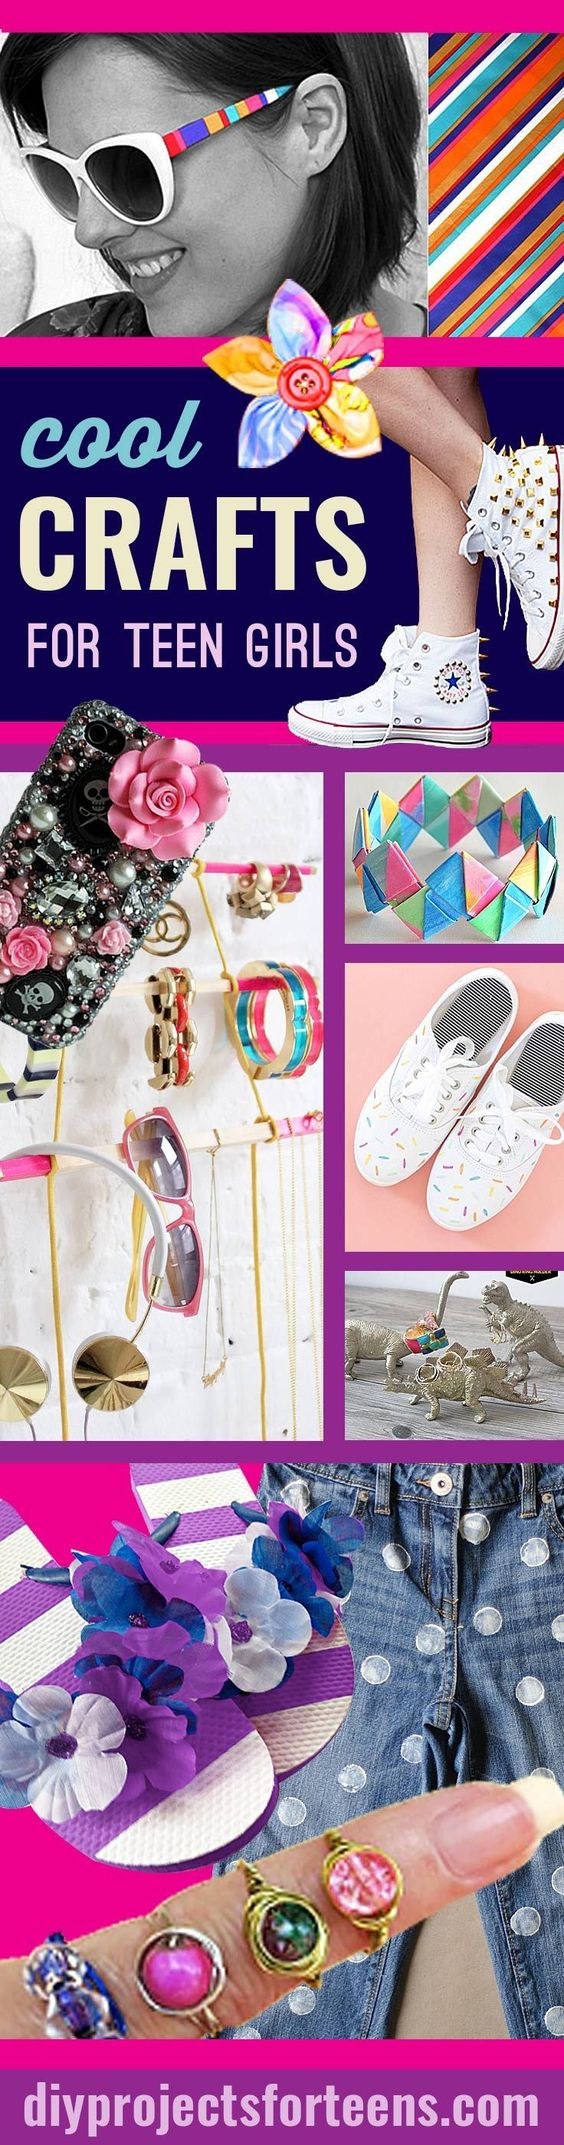 Cool crafts for teen girls creative fun crafts and tween for Diy projects for tweens